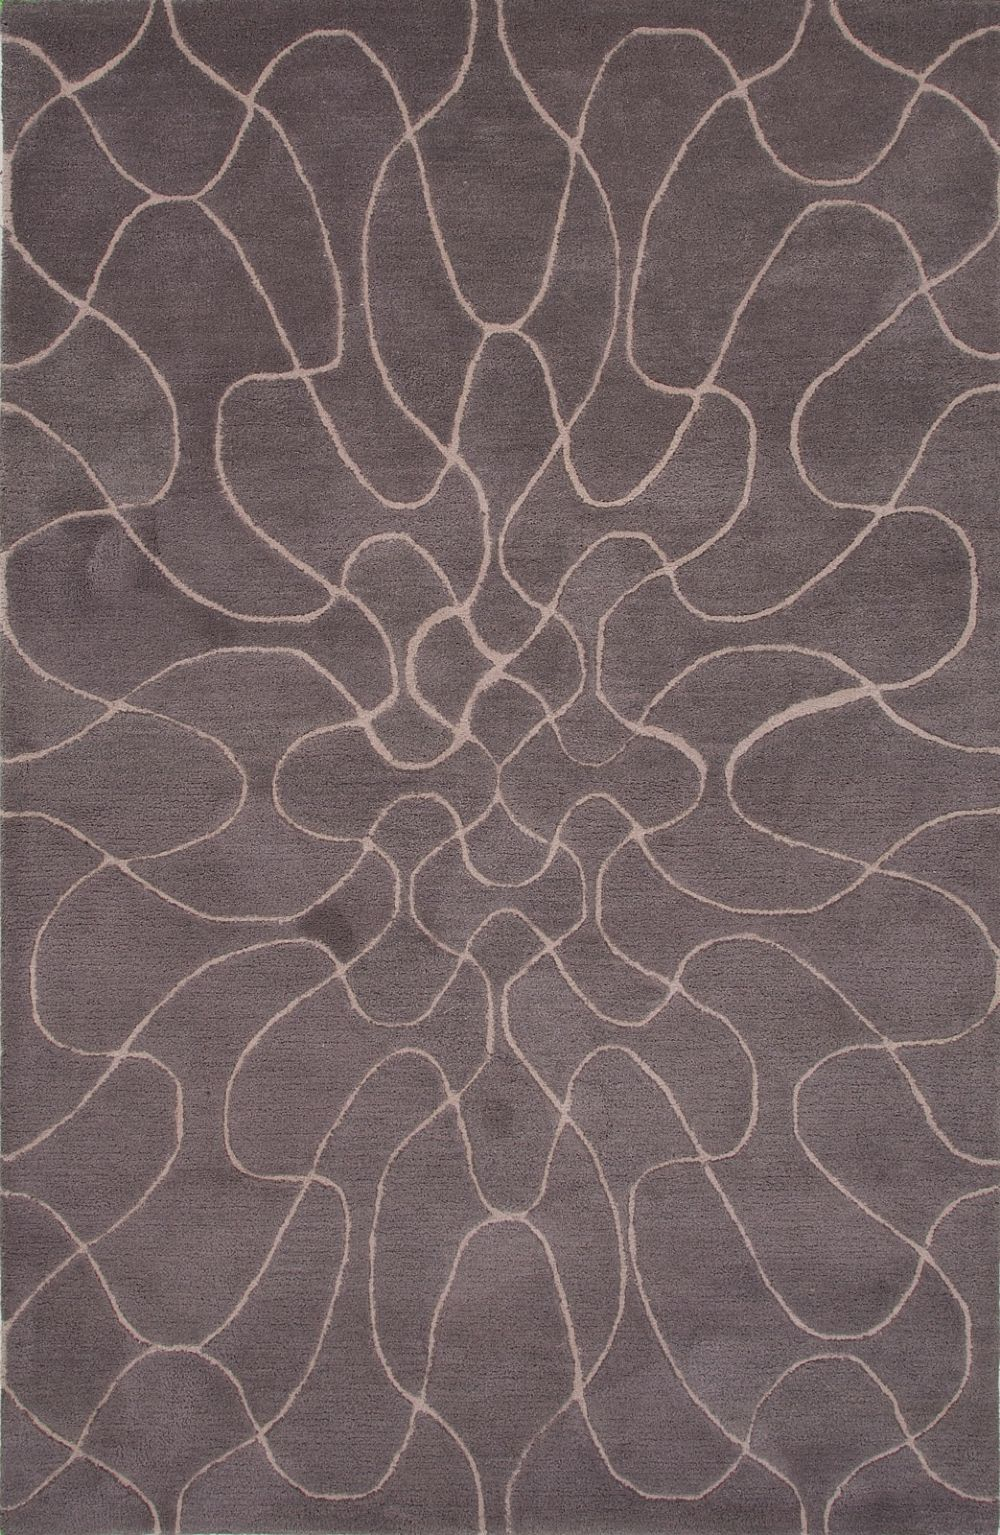 jaipur factoid contemporary area rug collection